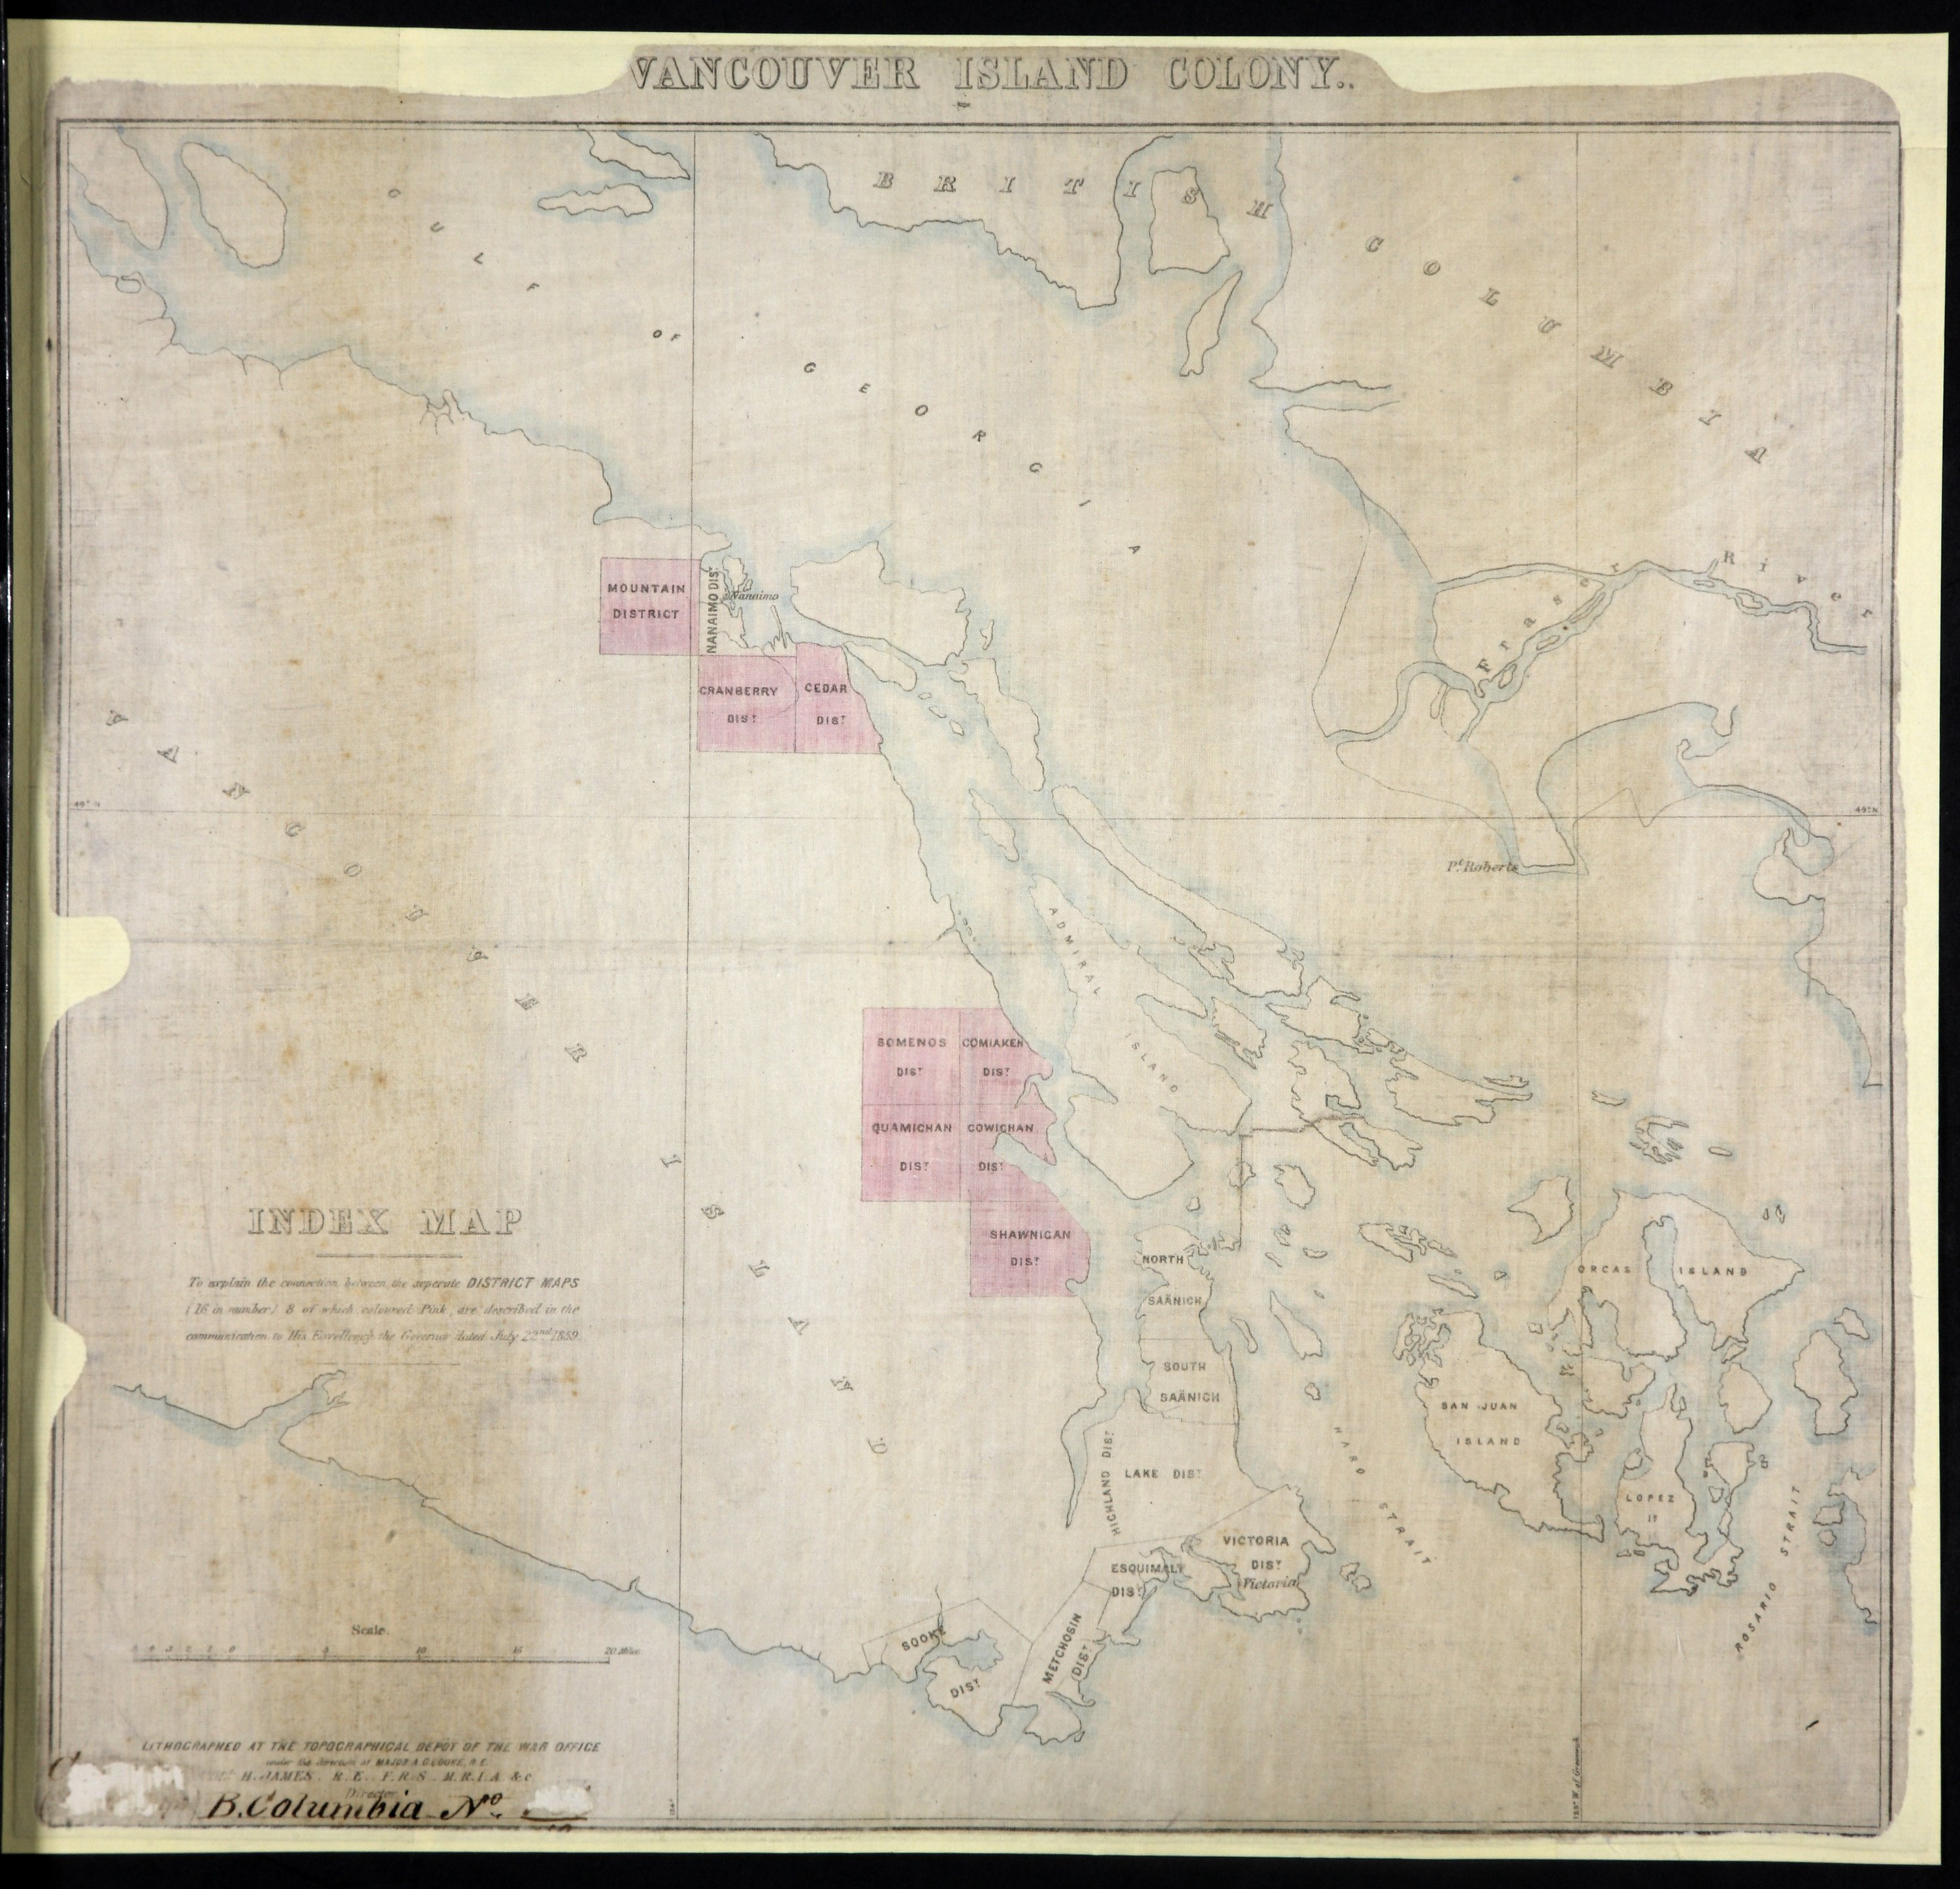 Index Map: to explain the connection between the separate District Maps (16 in number), 8 of which, coloured pink, are described in the communication to His Exellency the Governor dated July 22nd, 1859.